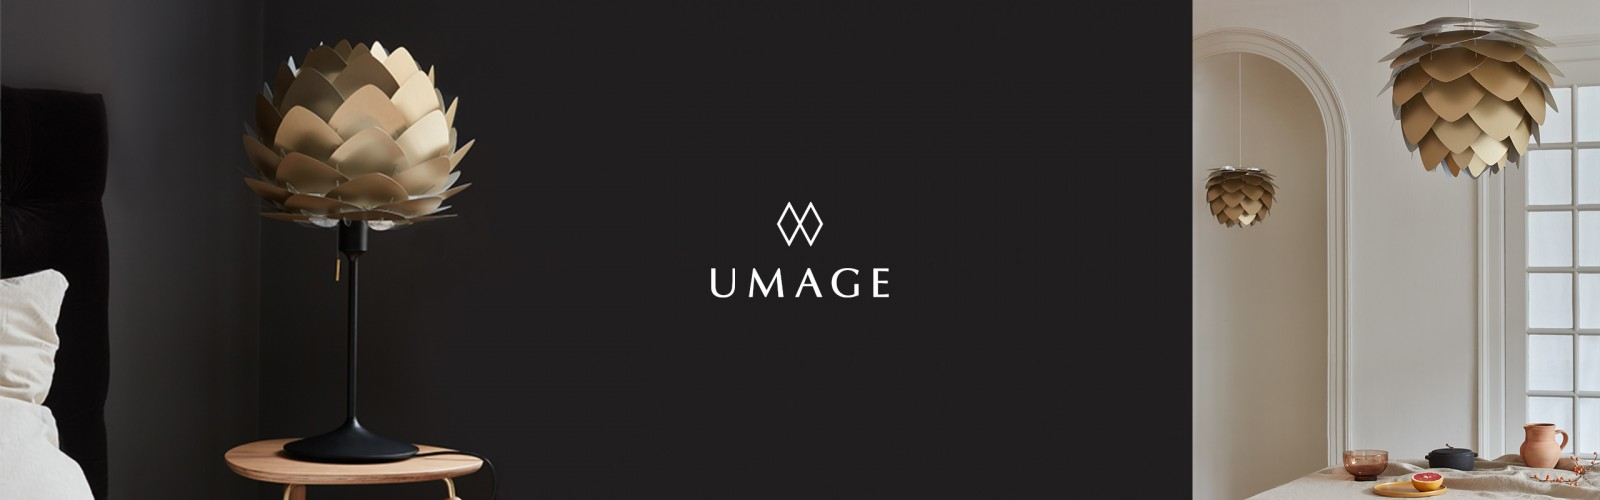 UMAGE_online banner_special edition